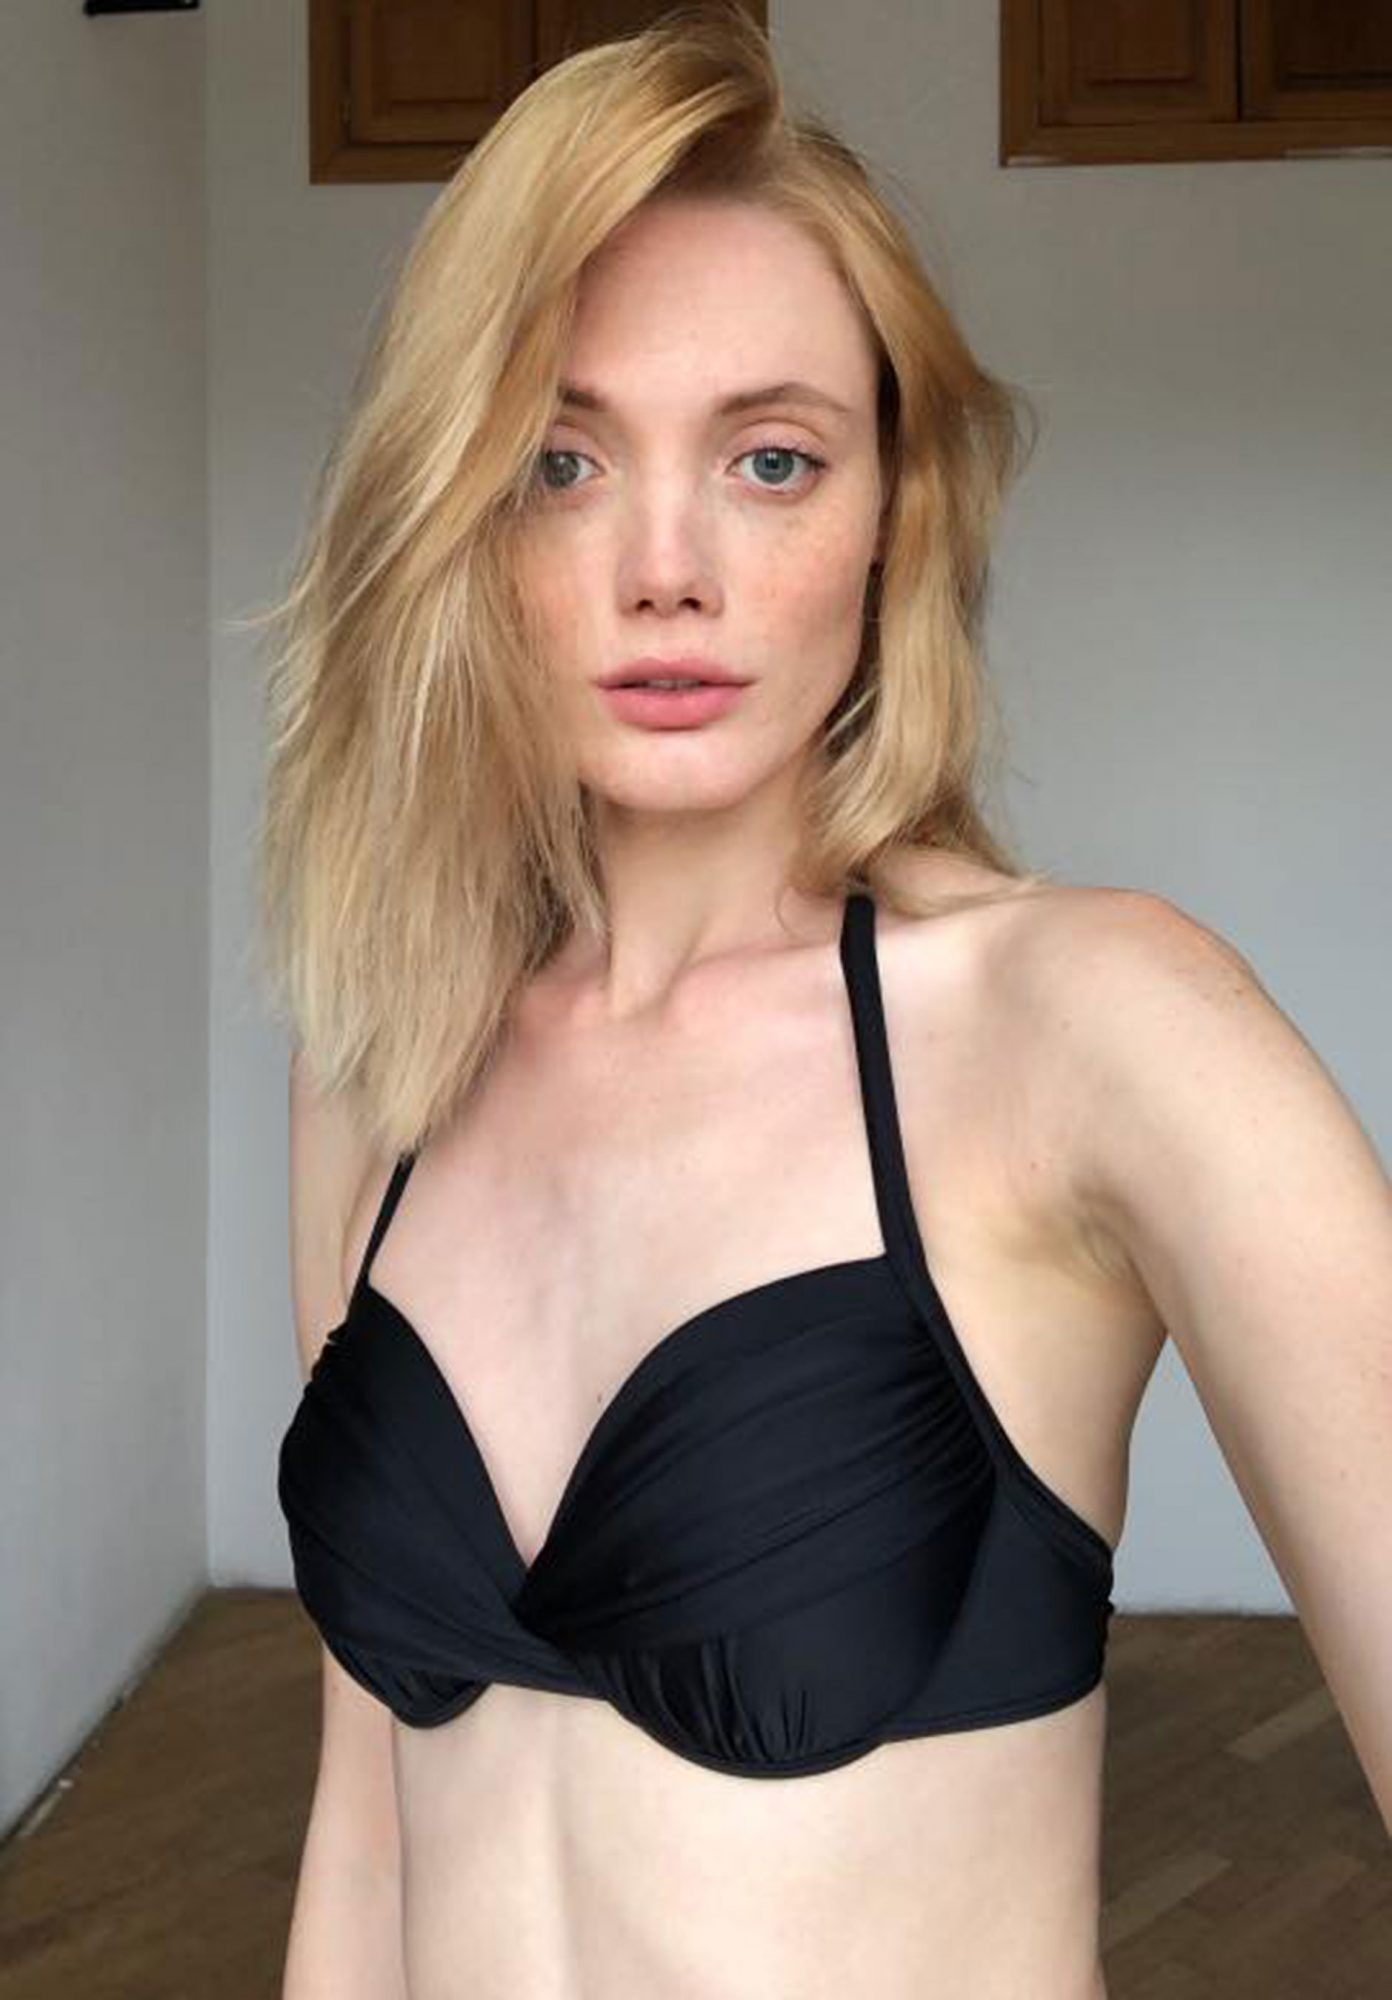 Russian Vogue Model Shares Shocking Photos of Her Battered Face After Alleged Assault by Boyfriend